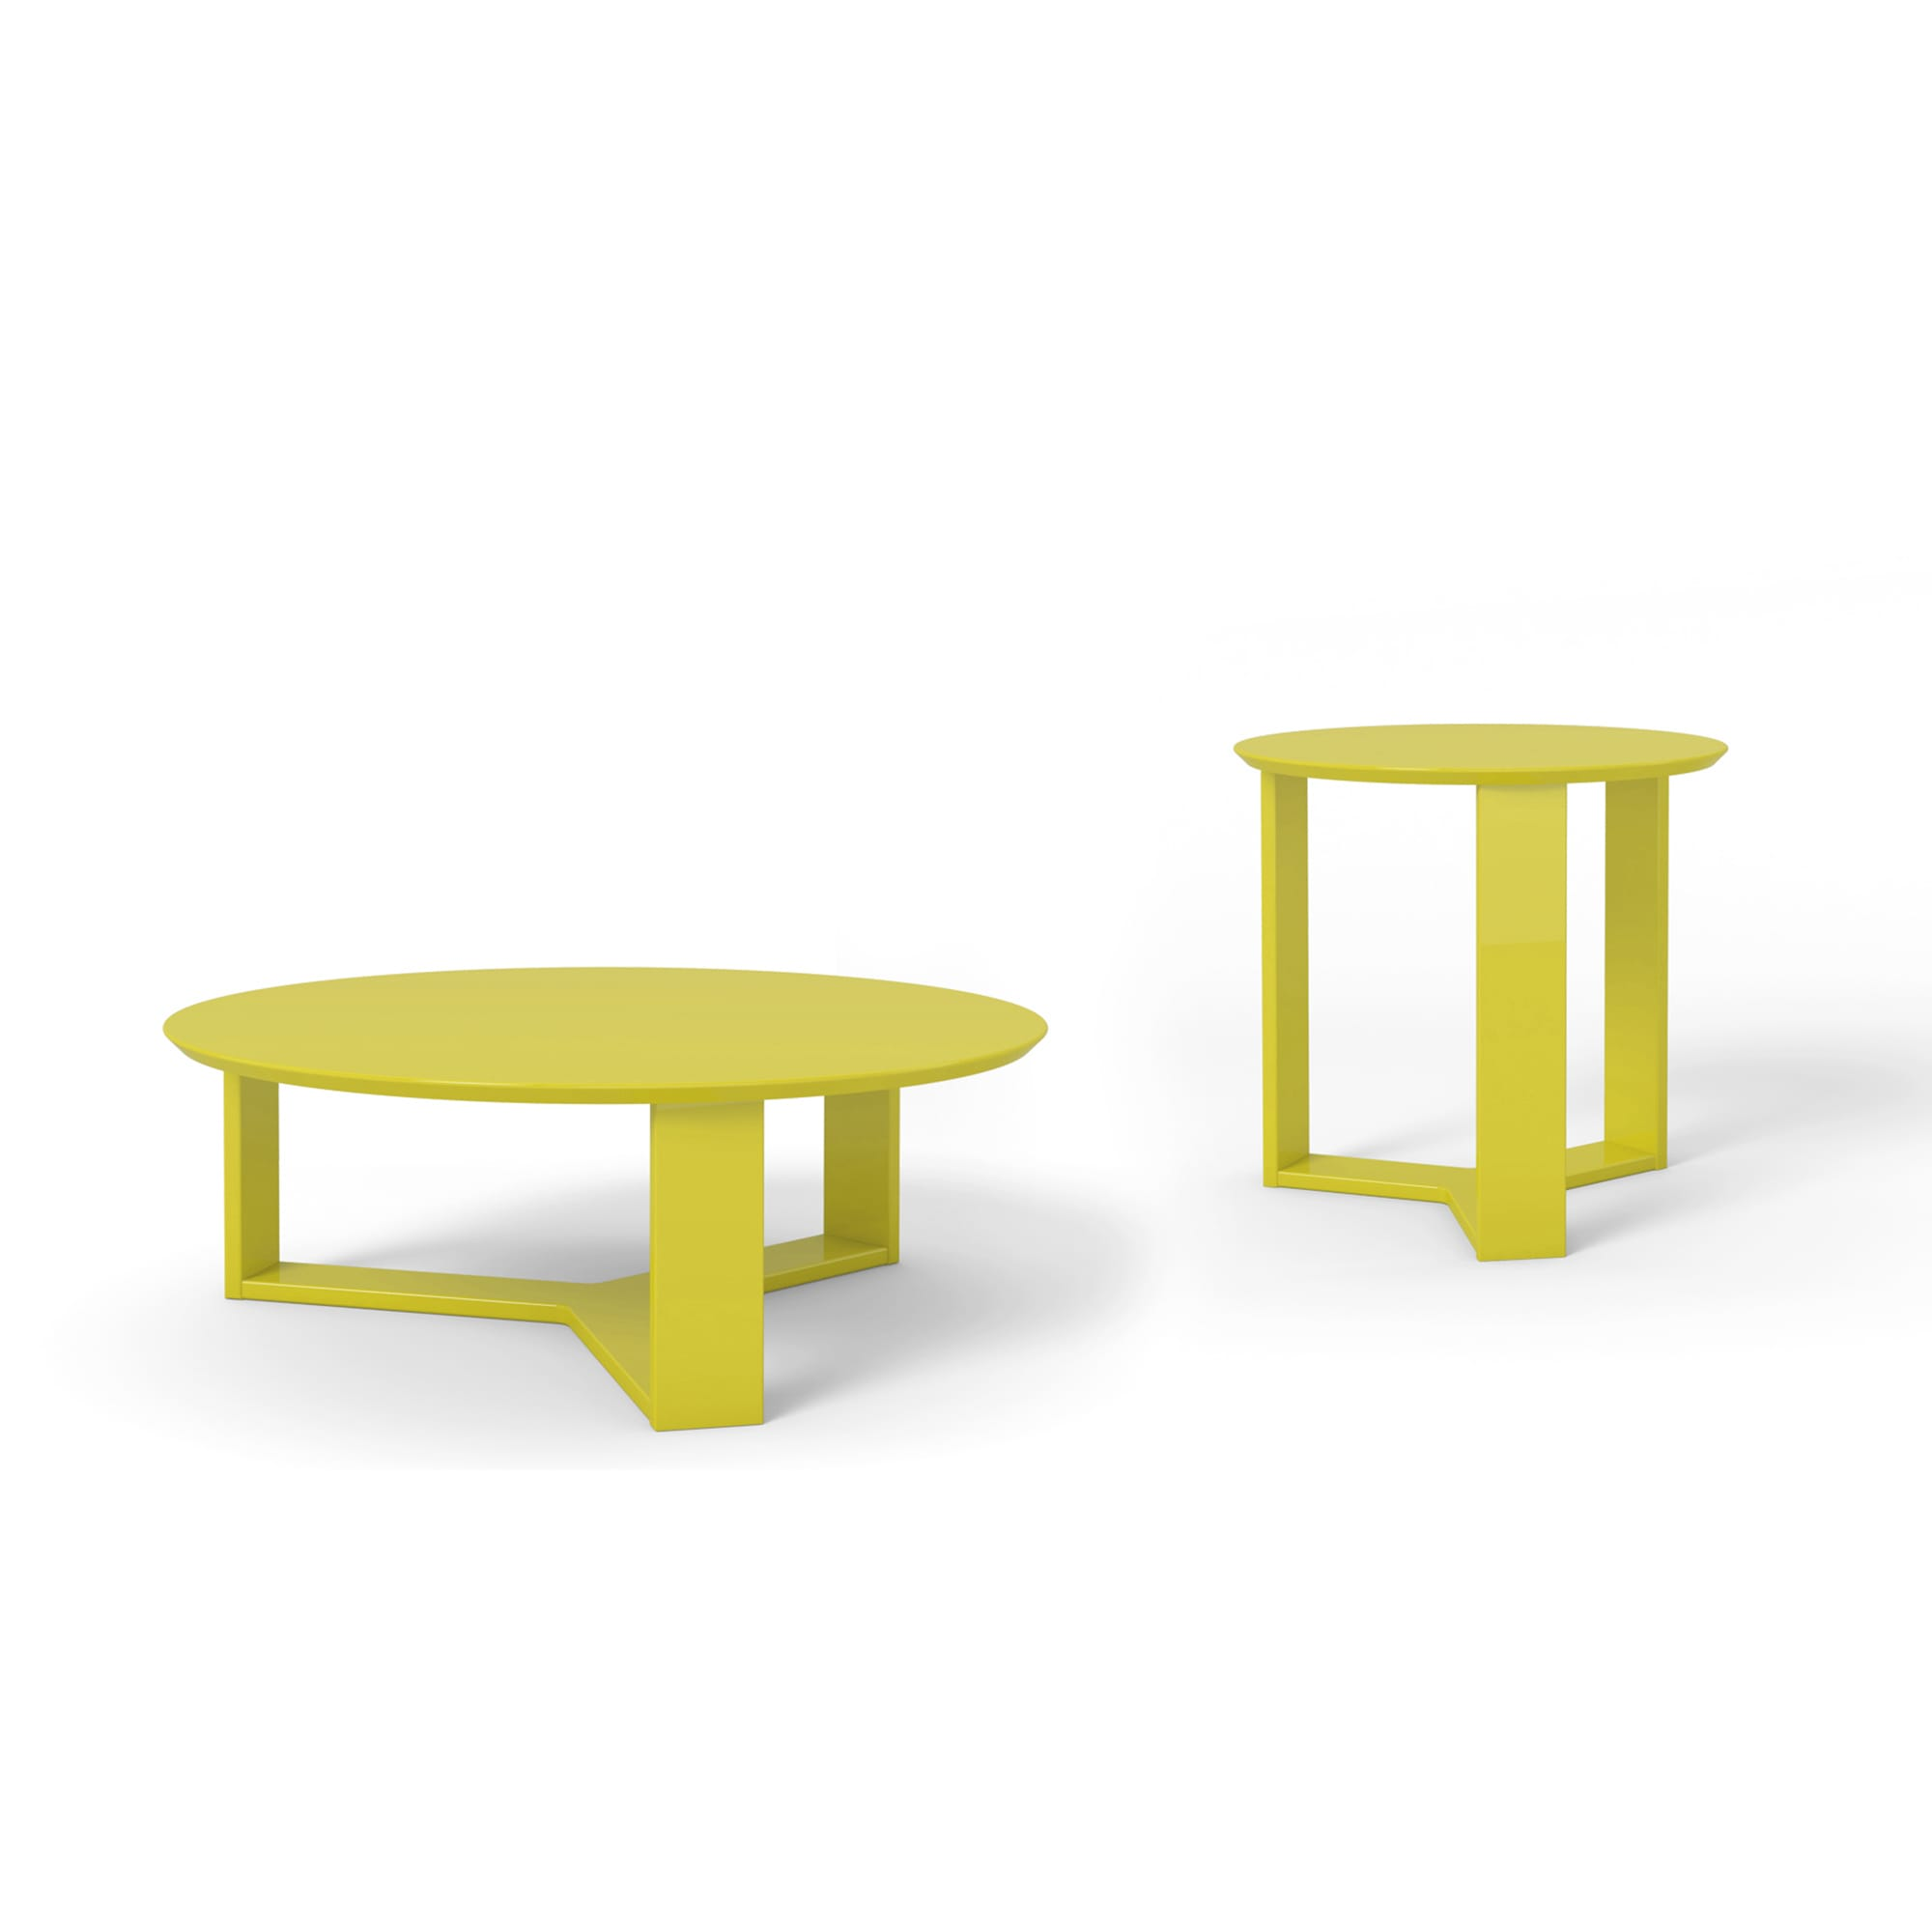 Madison lime gloss 2 piece accent table living room set by madison lime gloss 2 piece accent table living room set by manhattan comfort geotapseo Choice Image